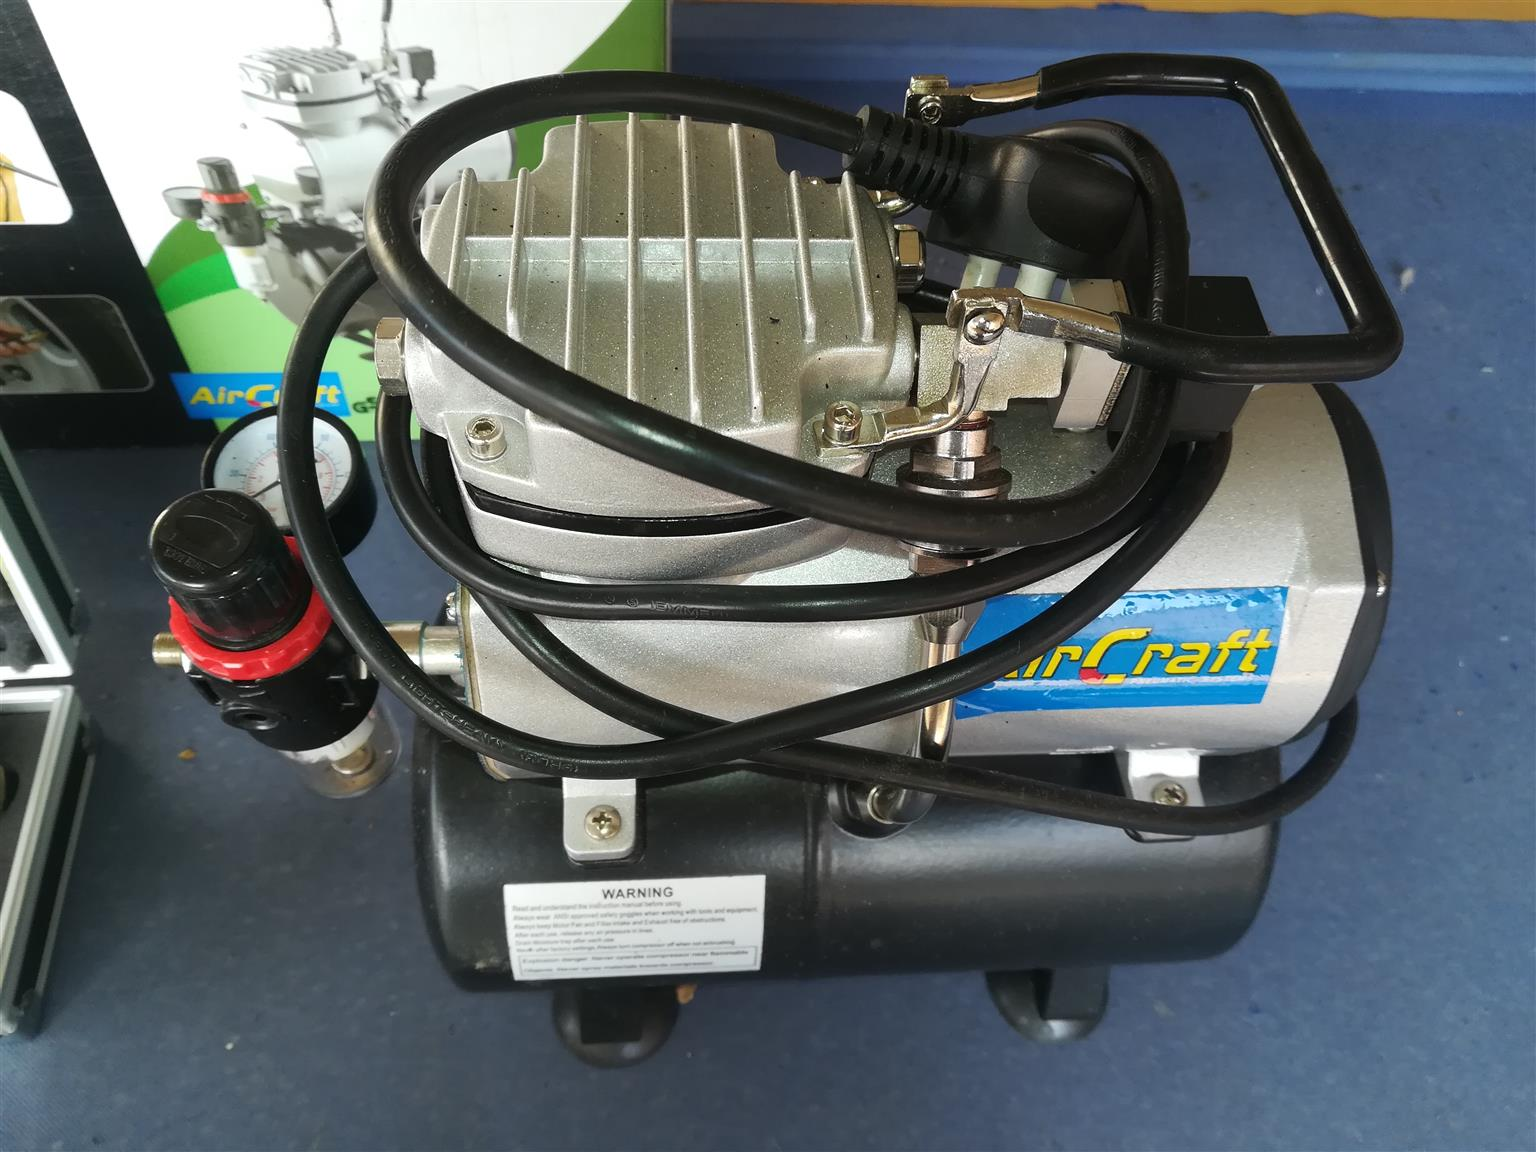 Airbrush Kit and Compressor